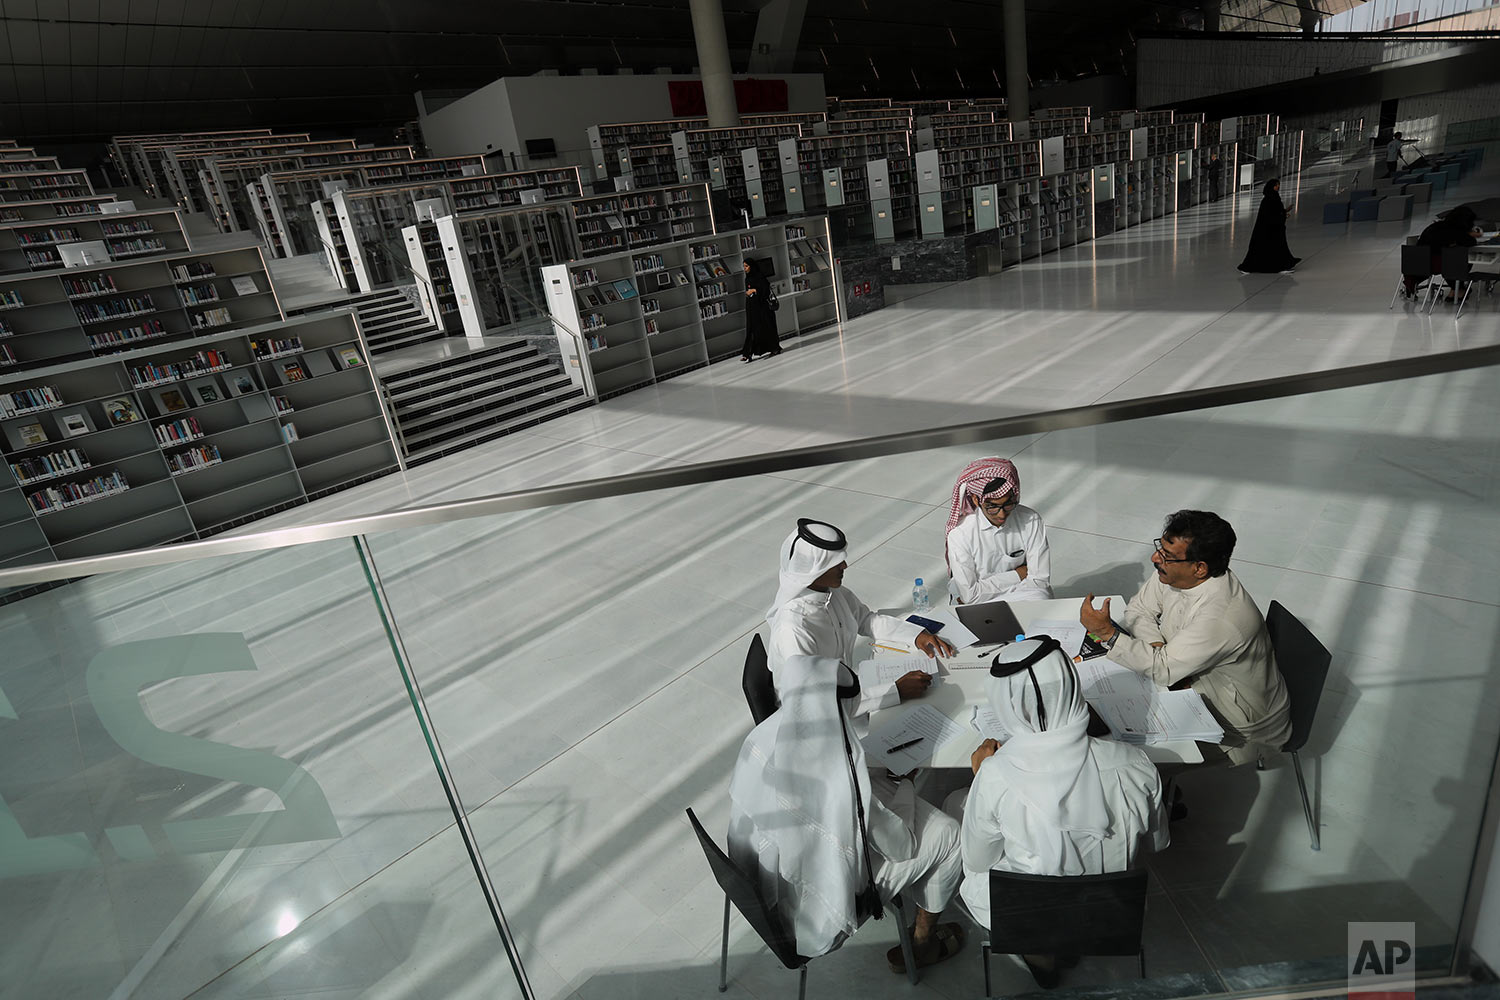 In this Tuesday, April 30, 2019 photo, a few students listen to their professor at the Qatar National Library in Doha, Qatar. (AP Photo/Kamran Jebreili)